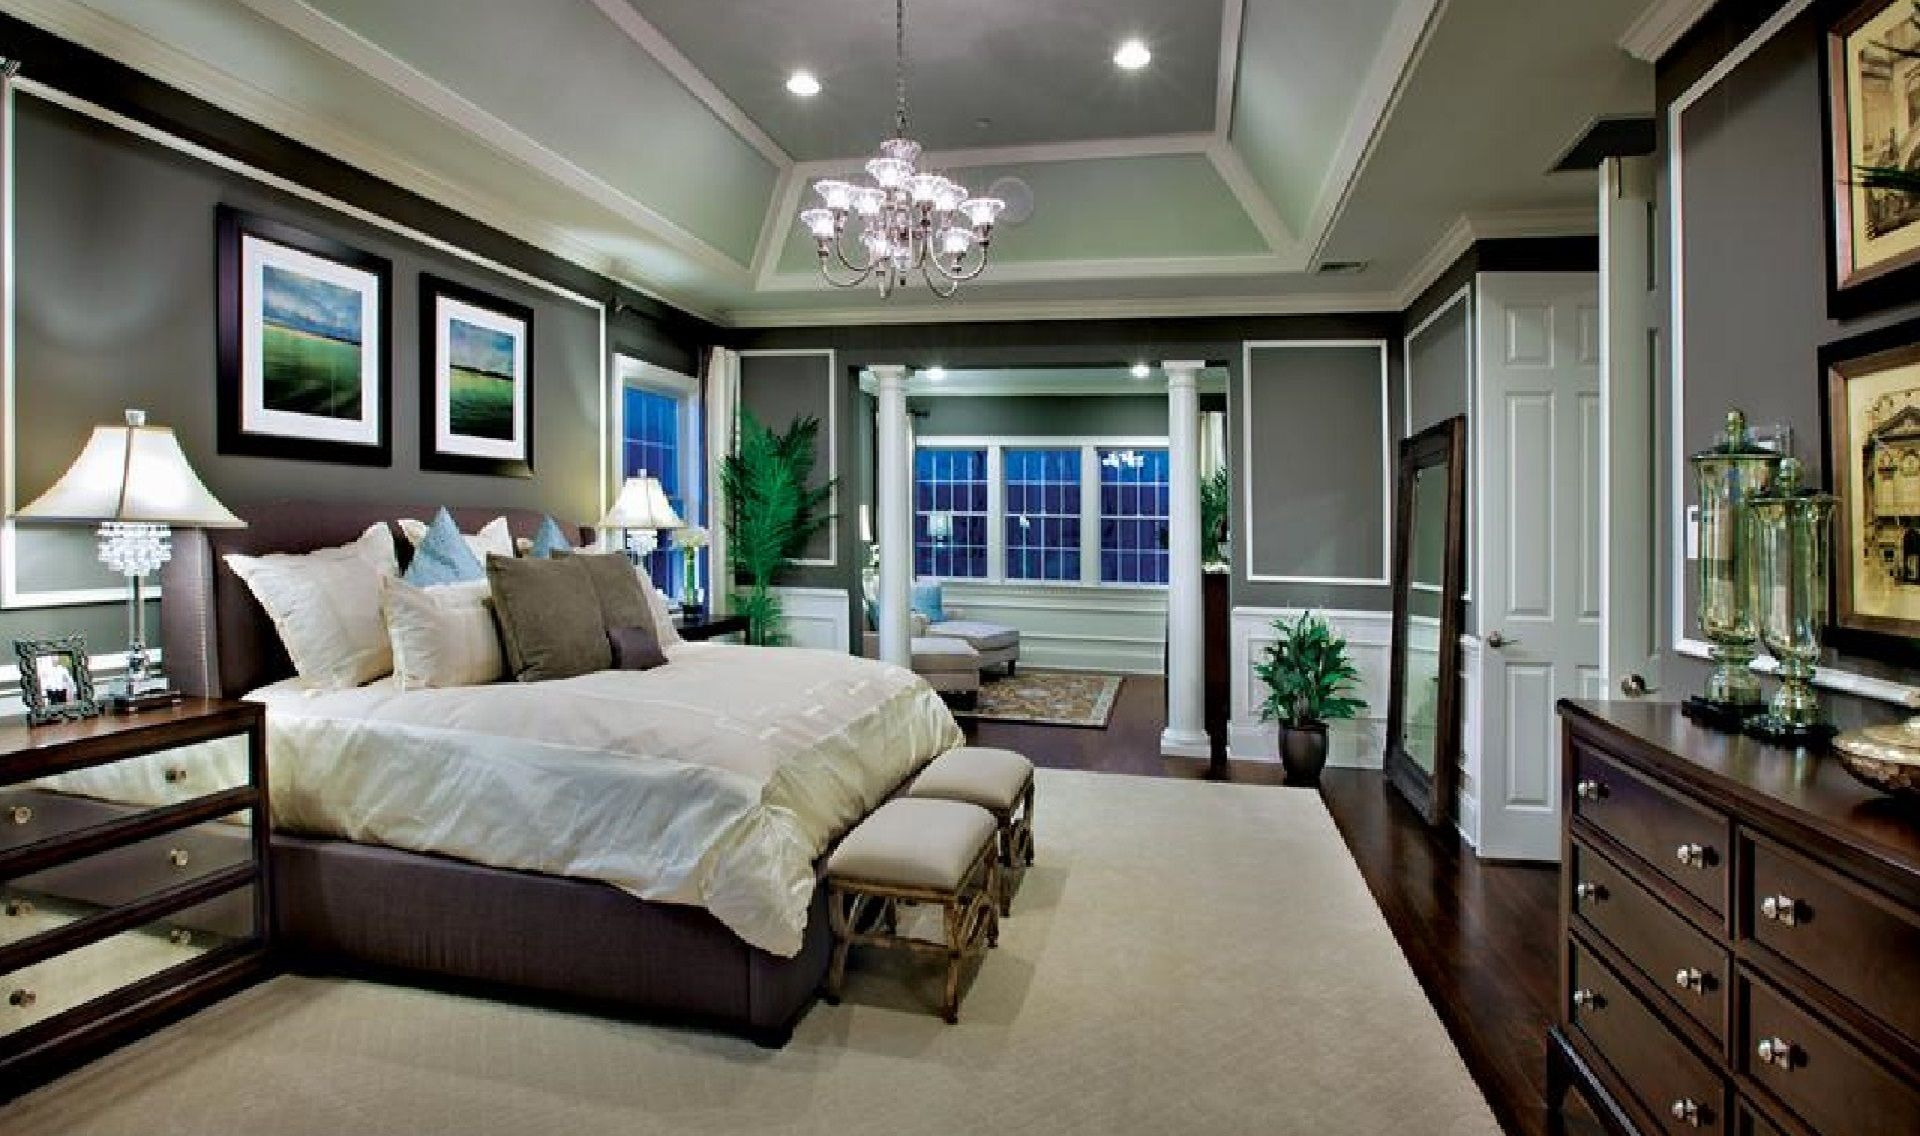 Int master bedroom parents large episodeinteractive episode size 1920 x 1136 New modern masters bedroom